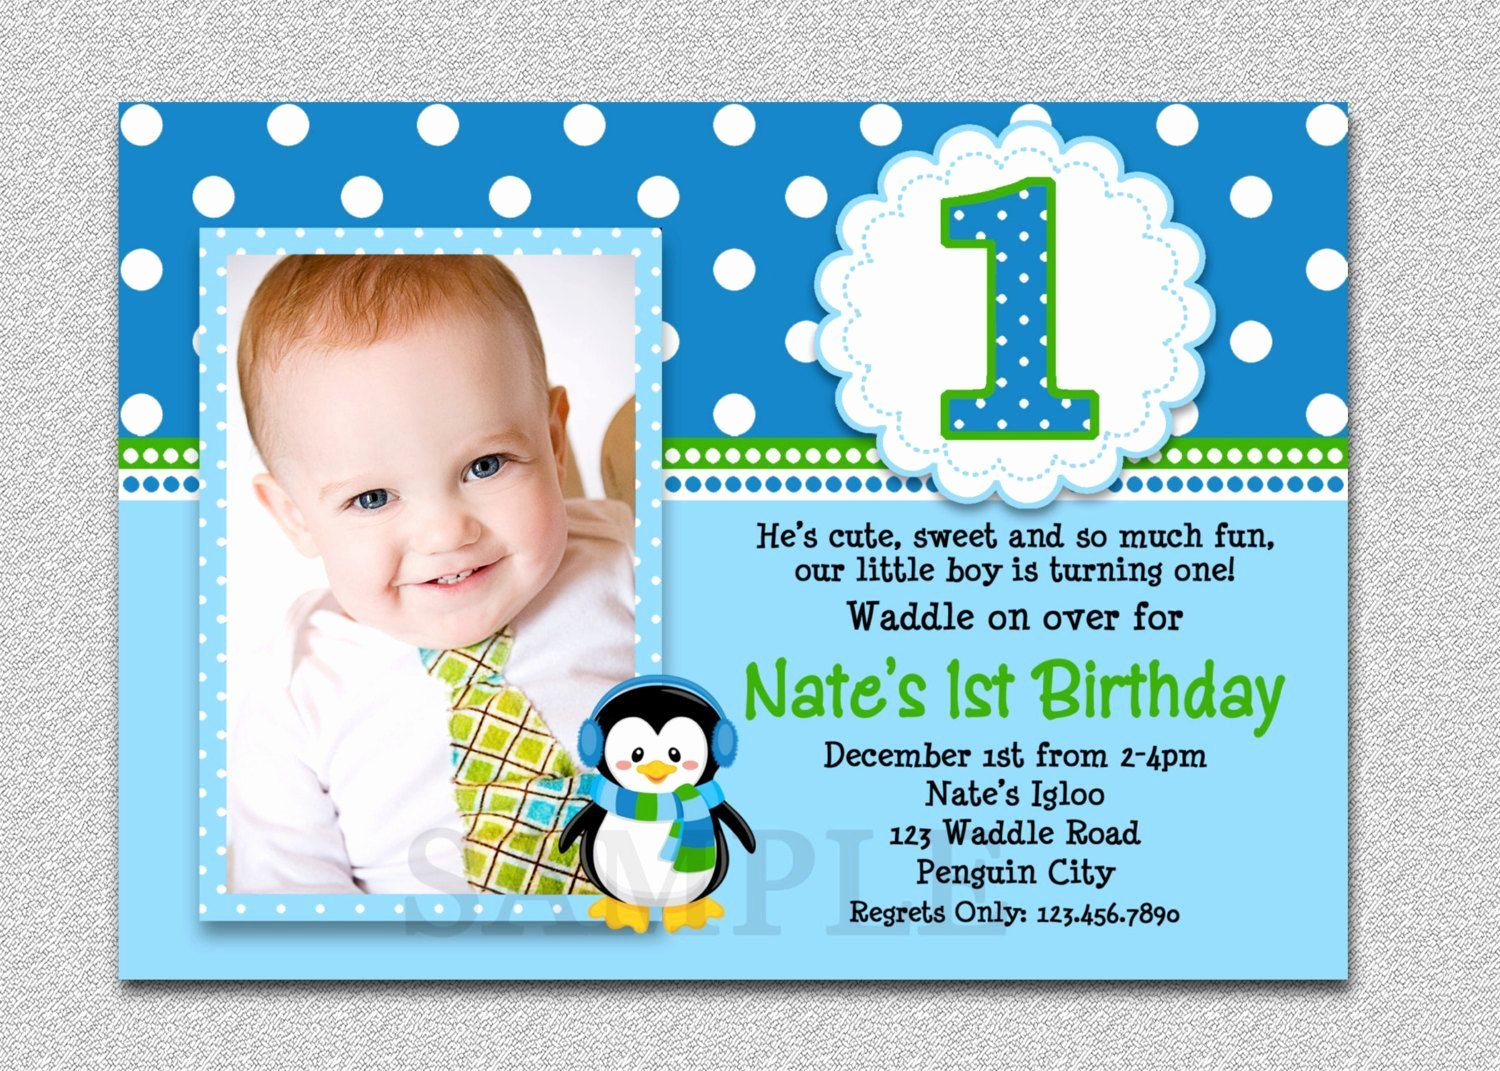 1st Birthday Card Template Lovely 1st Birthday and Baptism Bined Invitations